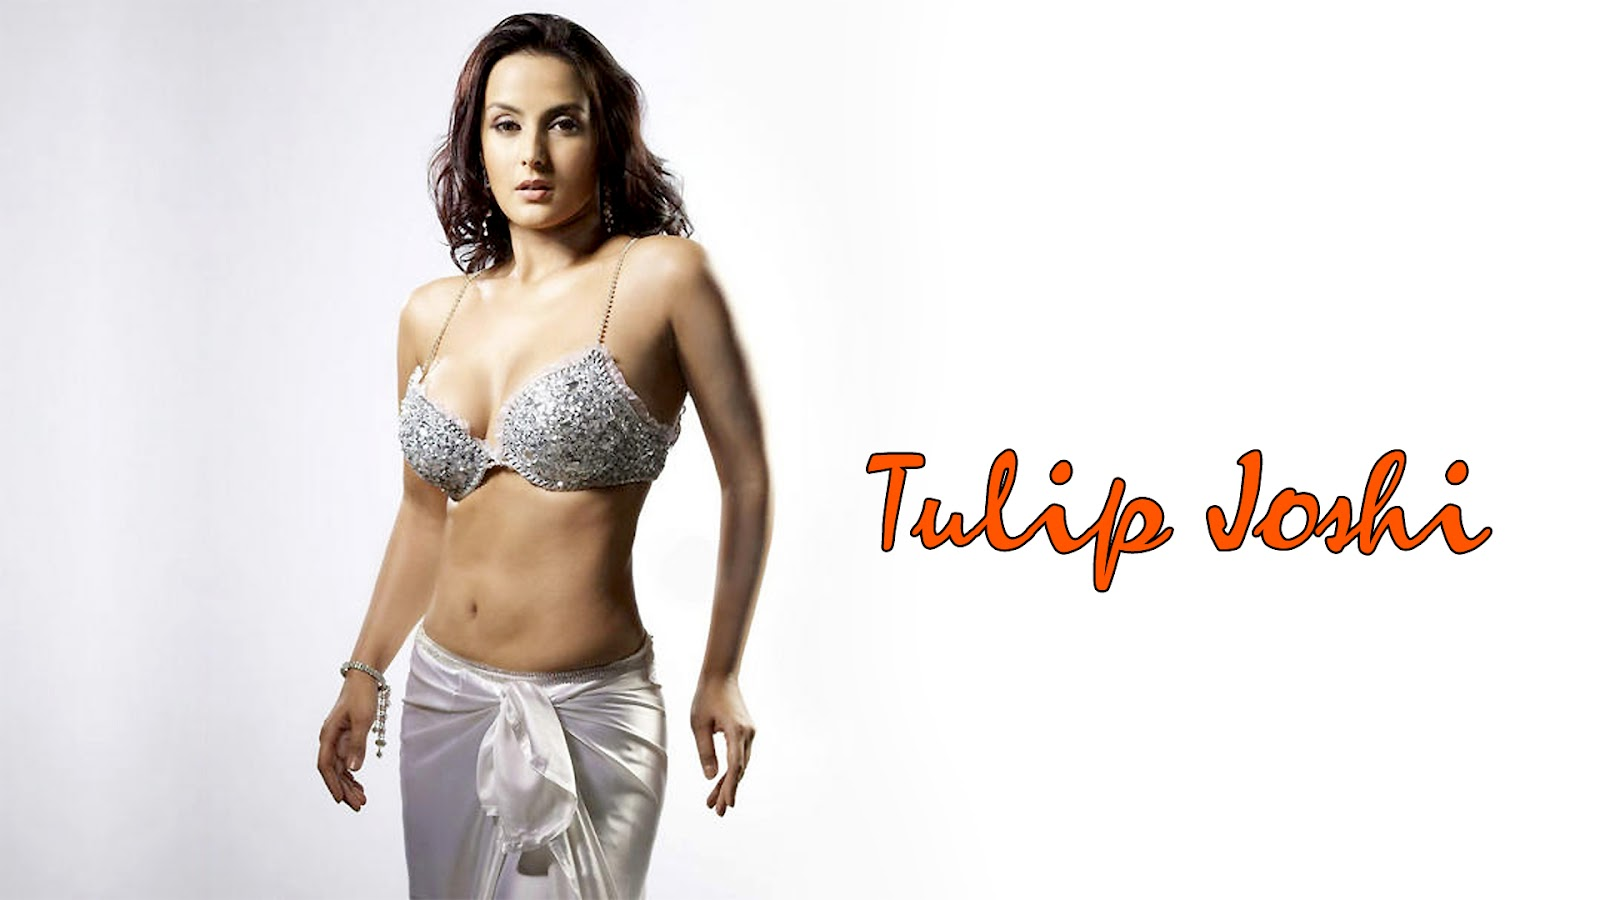 Tulip Joshi's Rare Bikini Photoshoots Collection by 3r Productionz